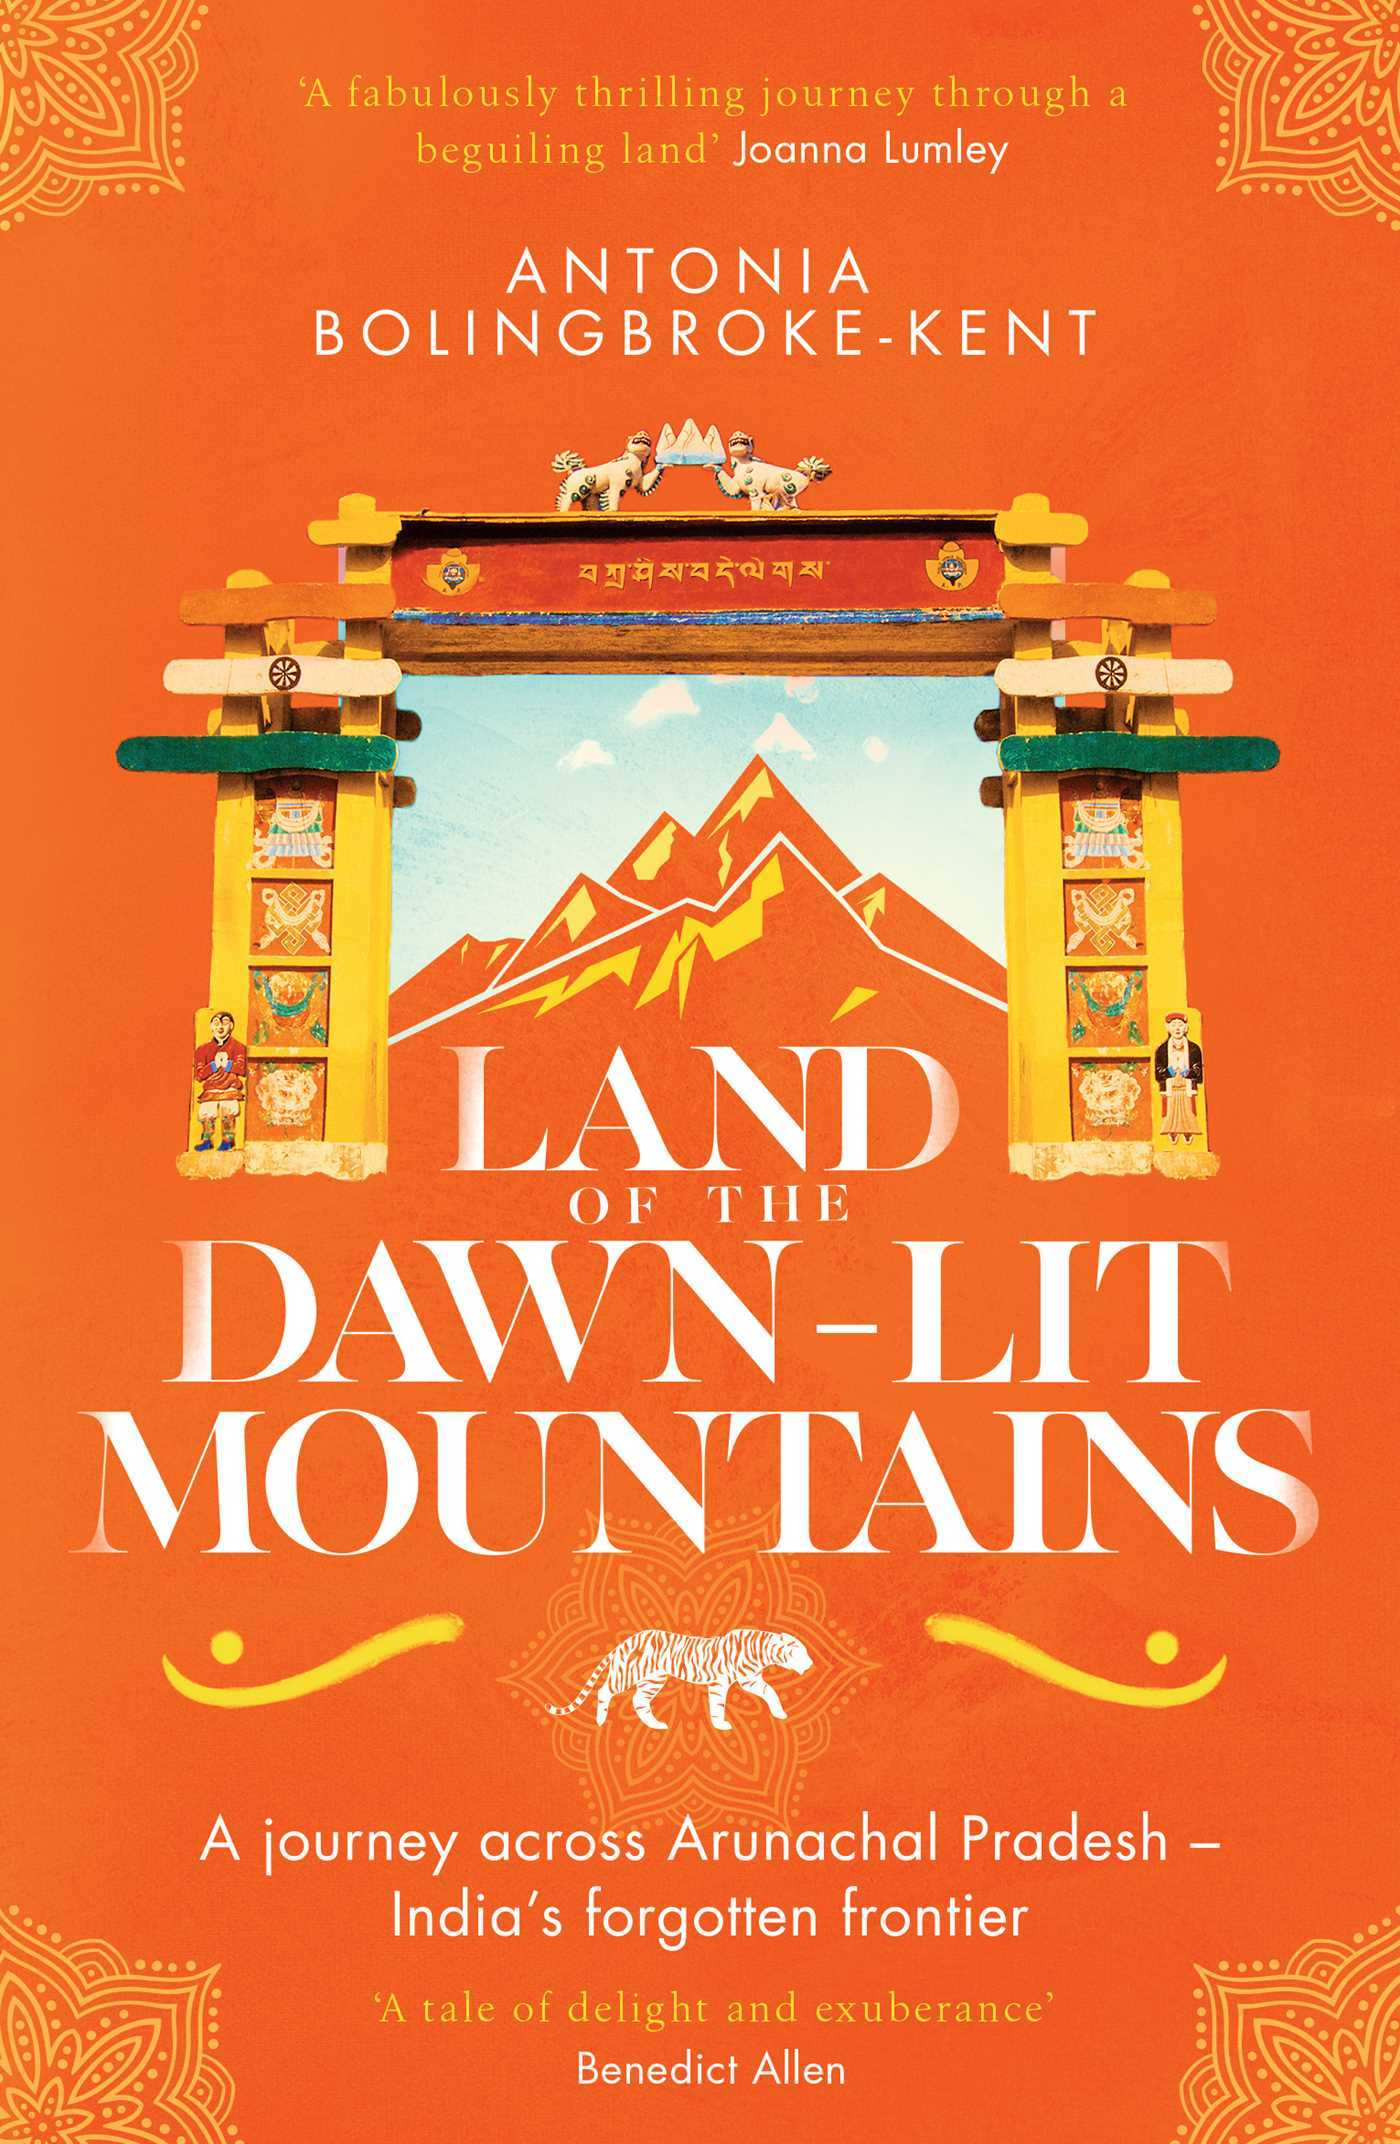 Land of the Dawn-lit Mountains A Journey across Arunachal Pradesh--India's Forgotten Frontier